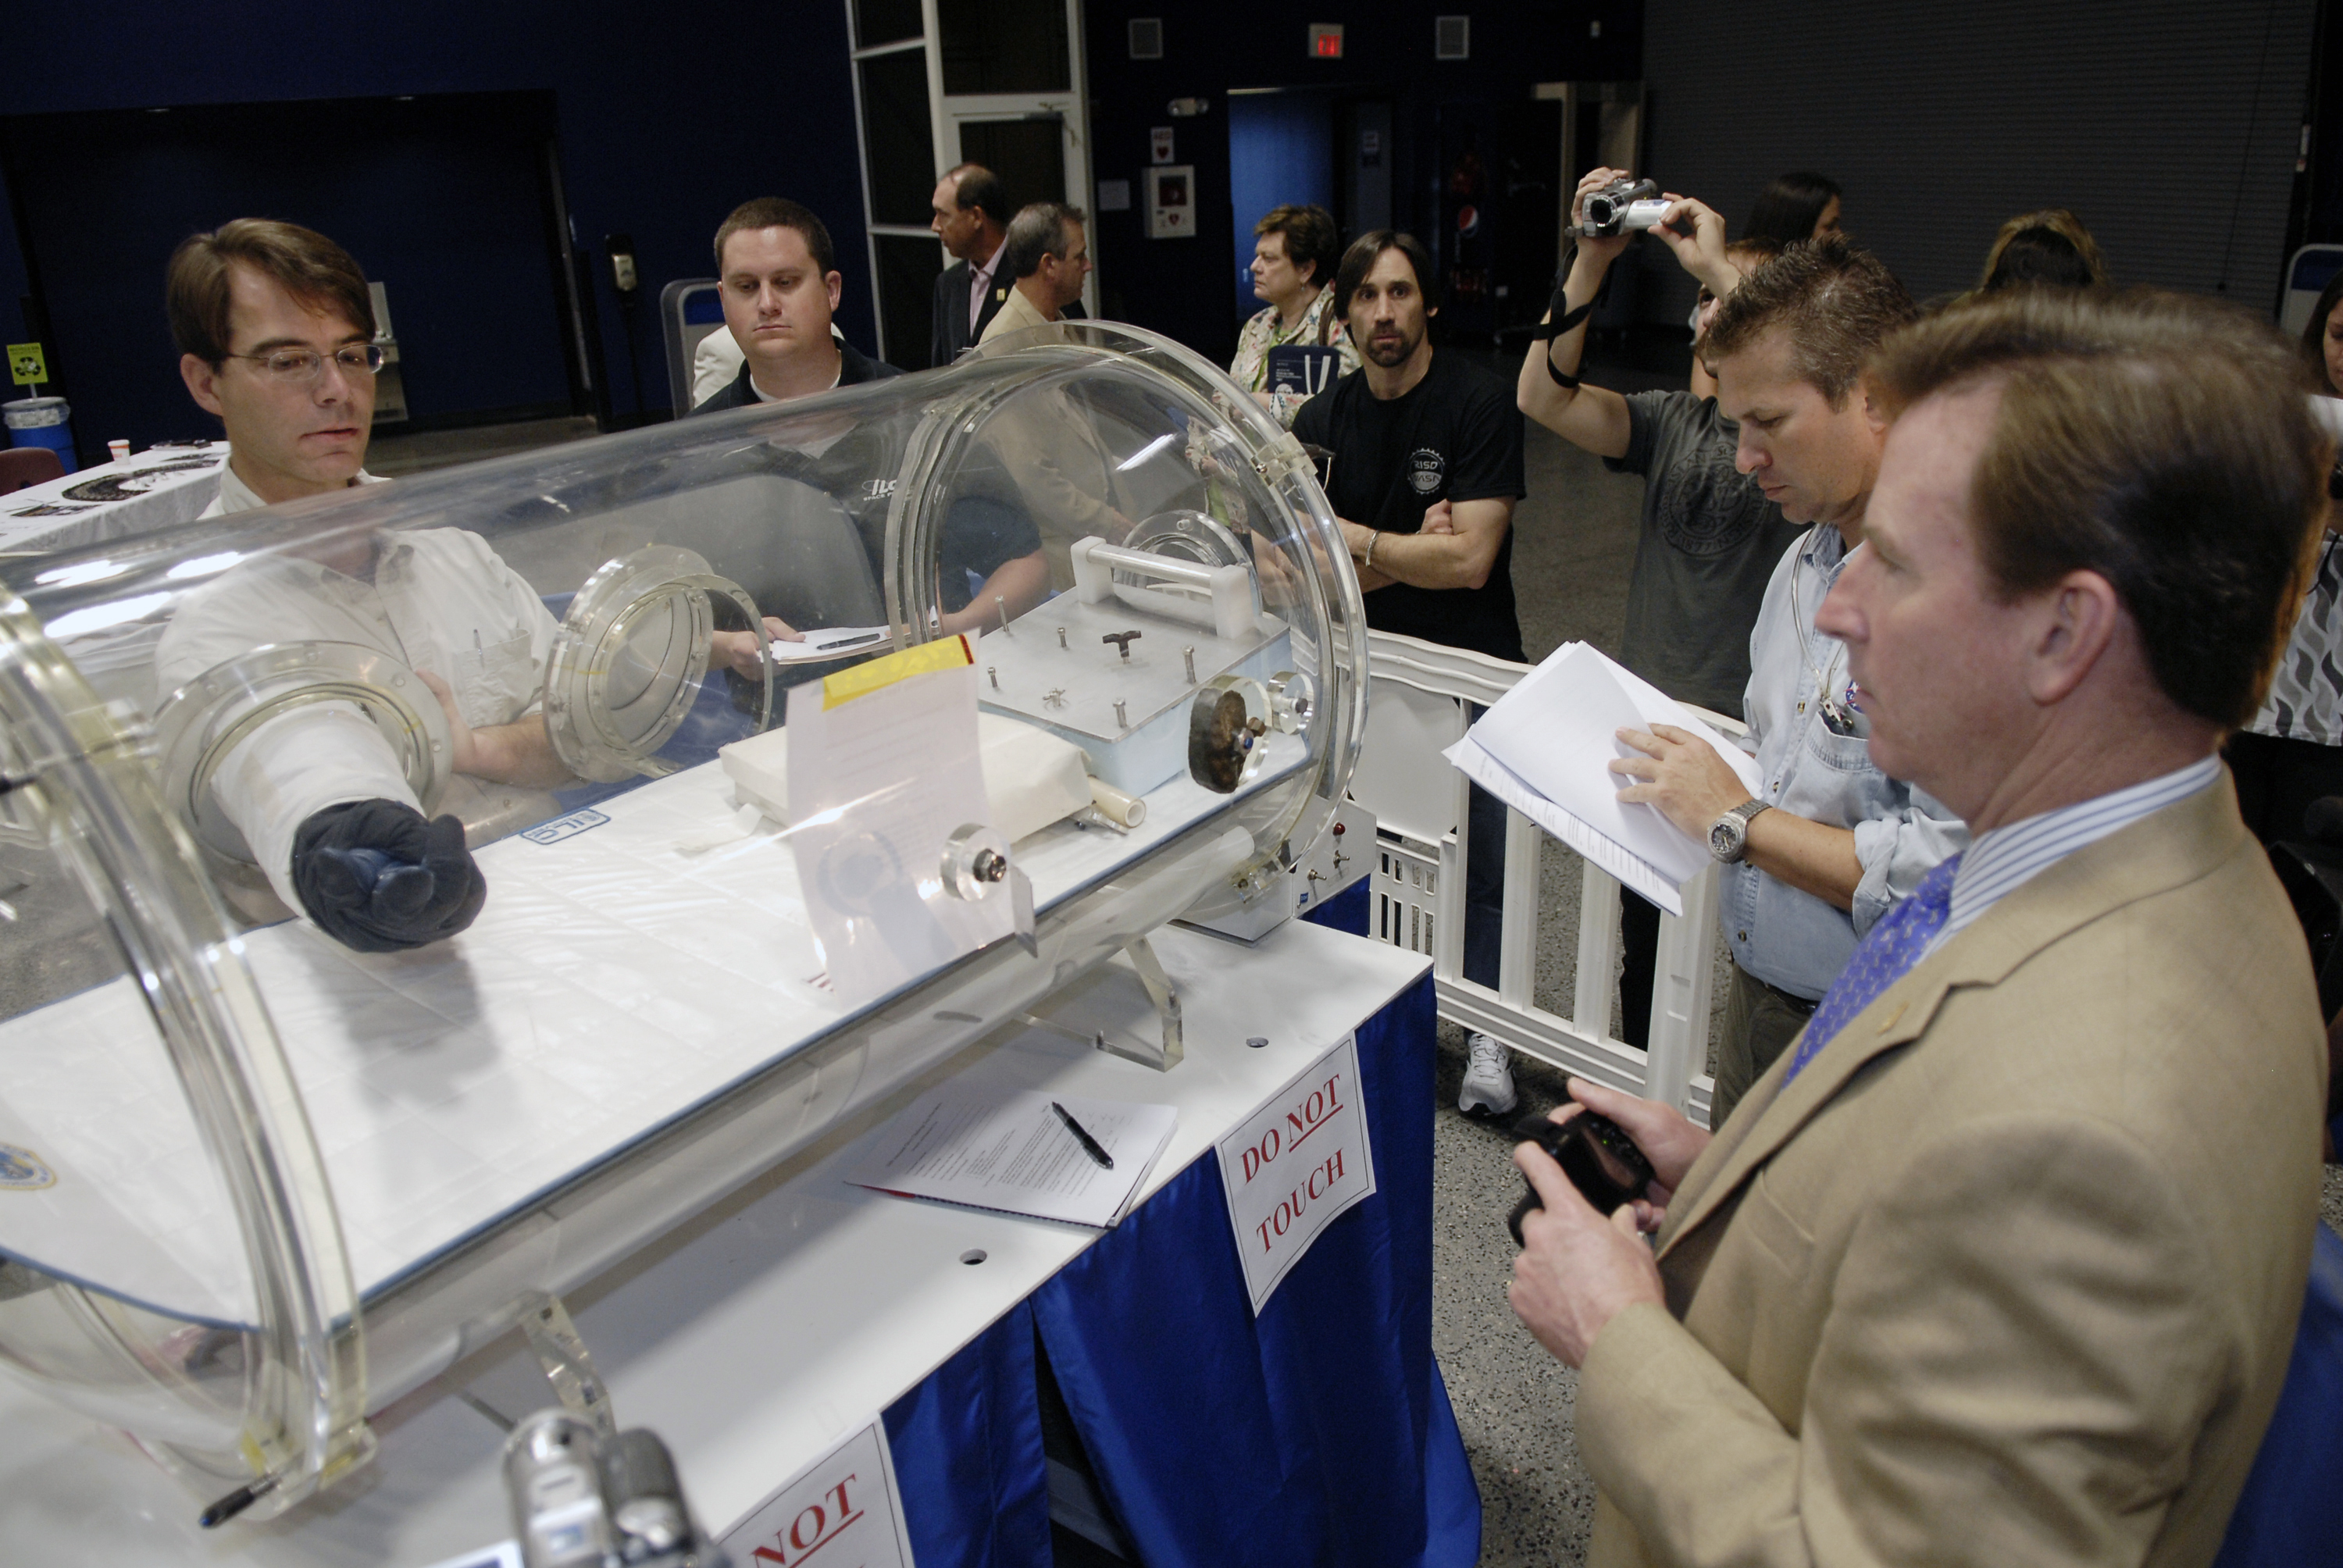 Inventor Peter Homer, left, participates in the dexterity and flexibility test during NASA's 2009 Astronaut Glove Challenge at the Astronaut Hall of Fame near Kennedy Space Center